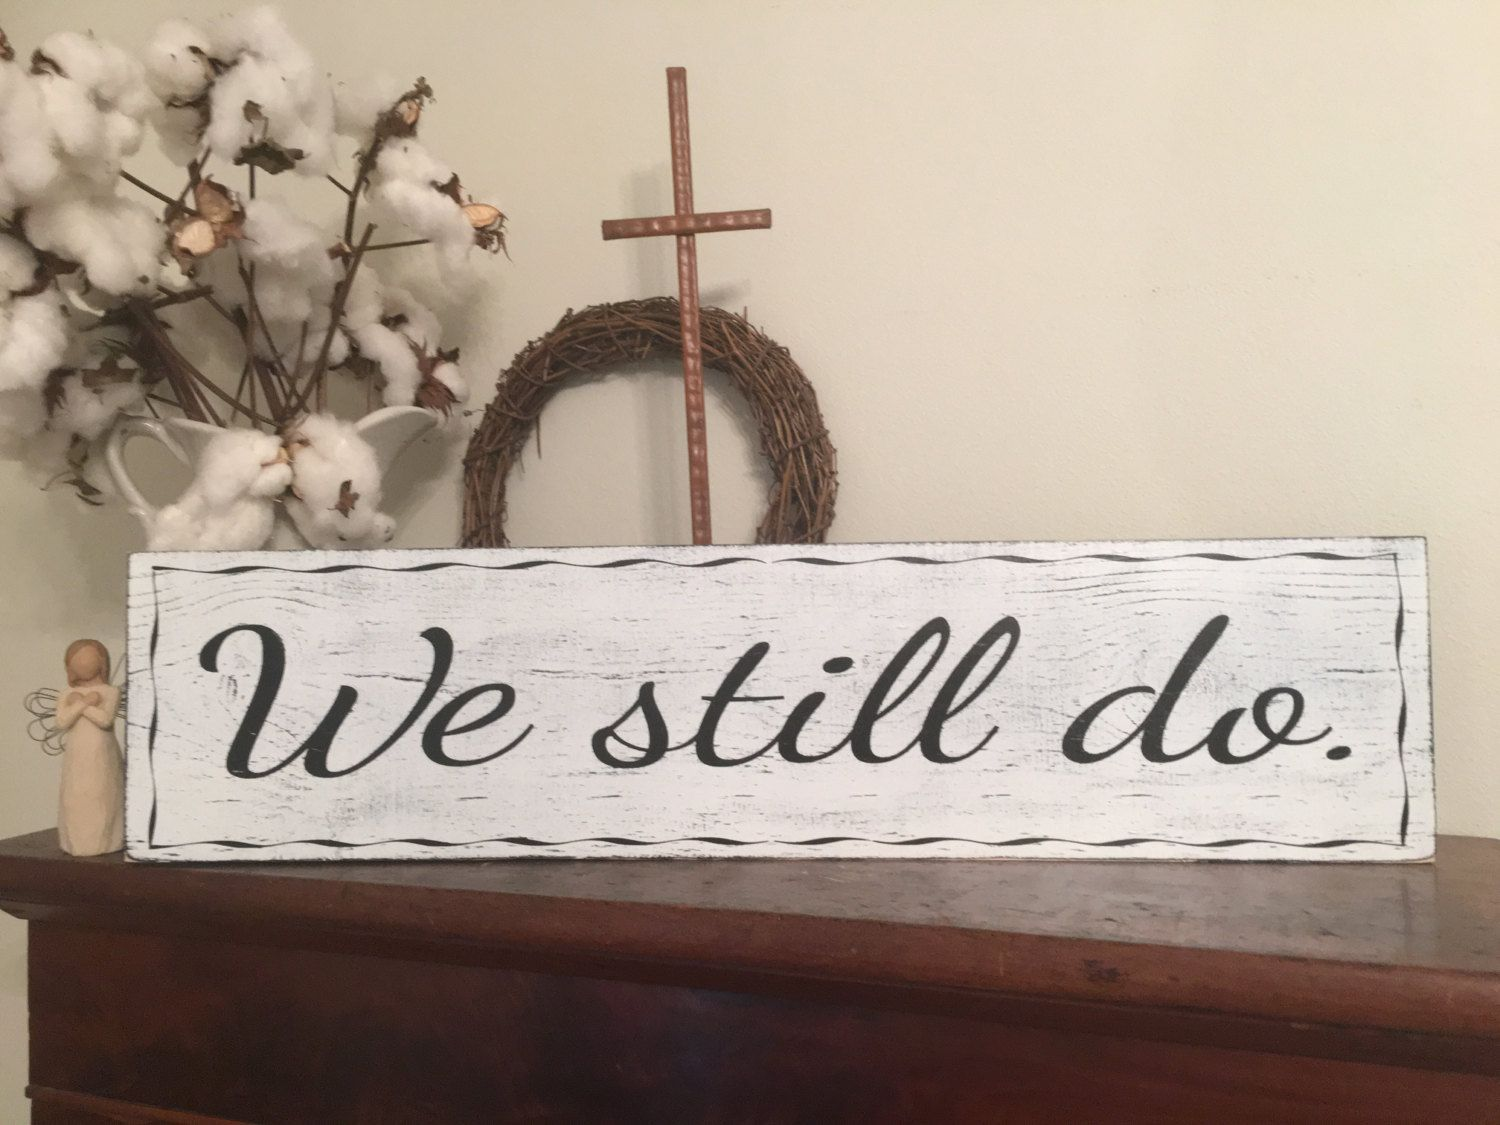 Wall Signs Decor Beauteous We Still Do Sign Fixer Upper Inspired Signs30X725 Rustic Wood Design Inspiration